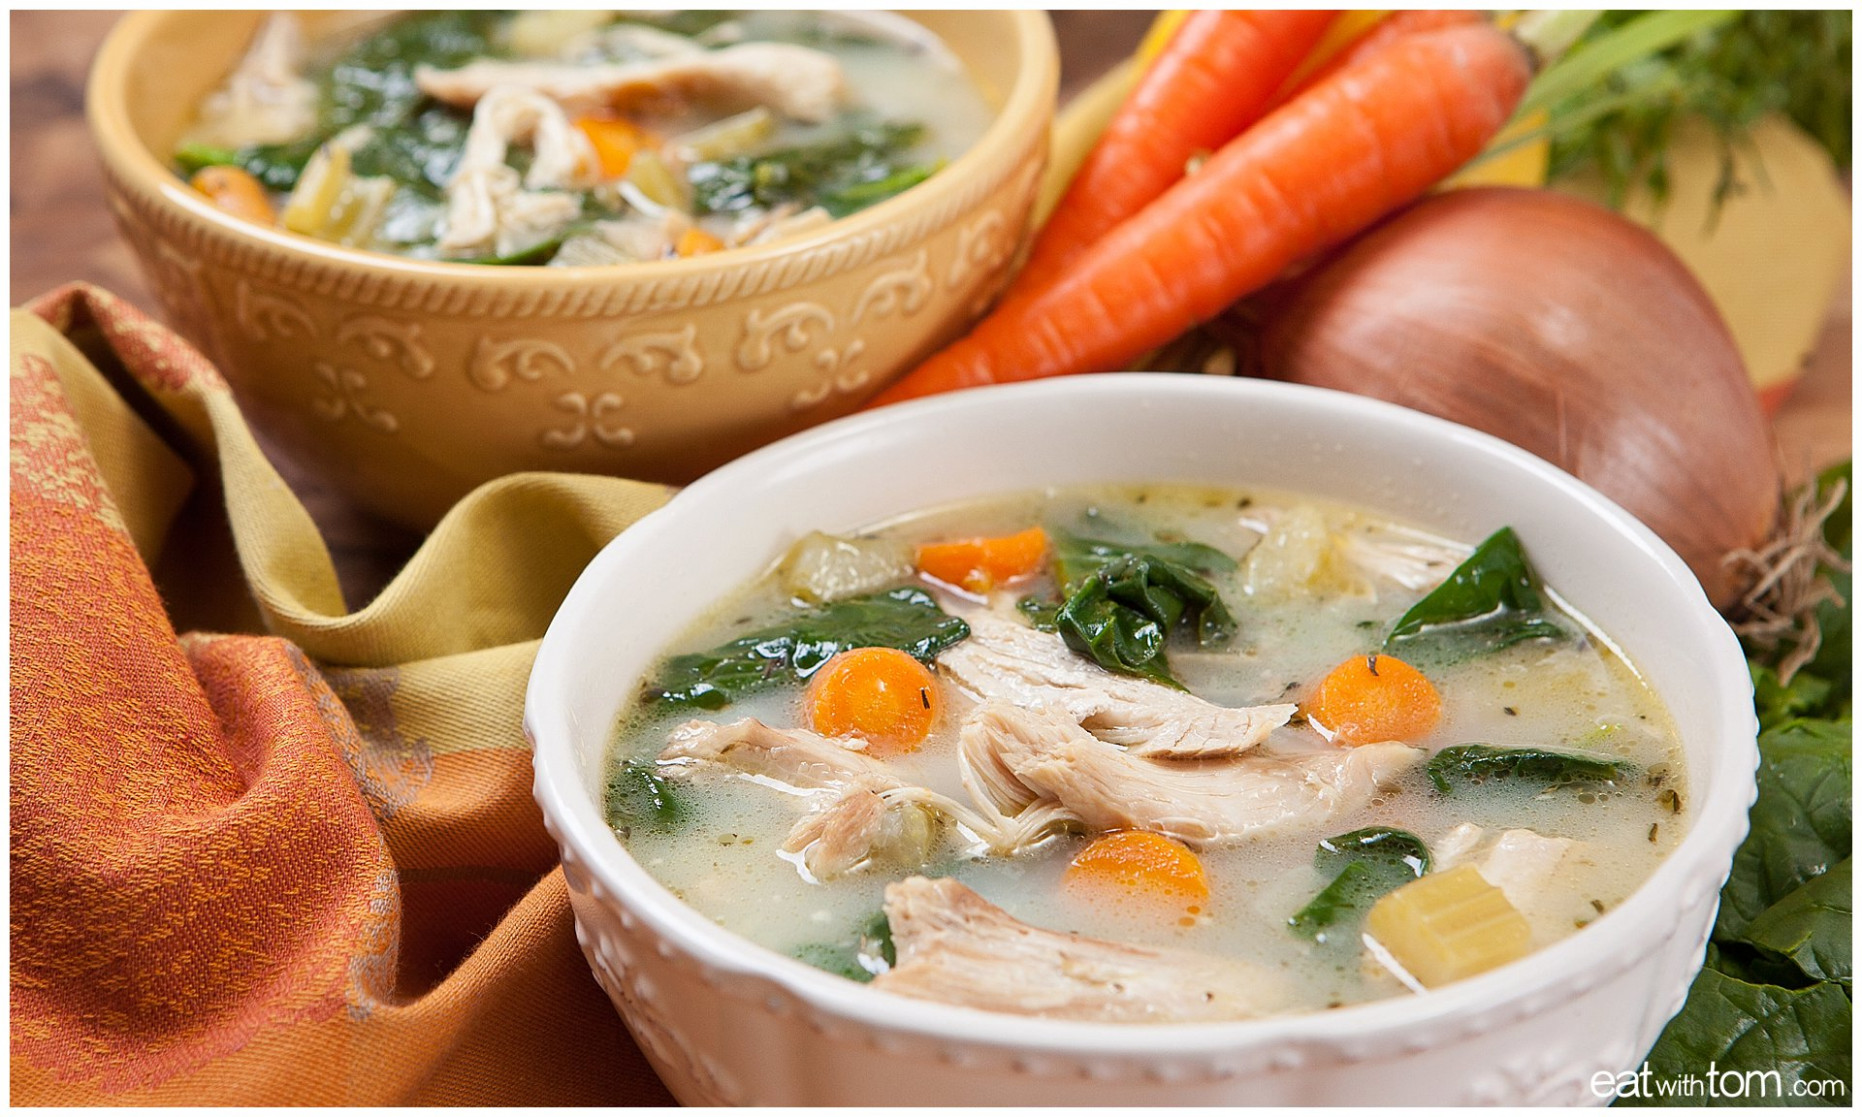 Chicken Soup Recipe - Pressure Cooker Method - Pressure Cooker Xl Chicken Thigh Recipes